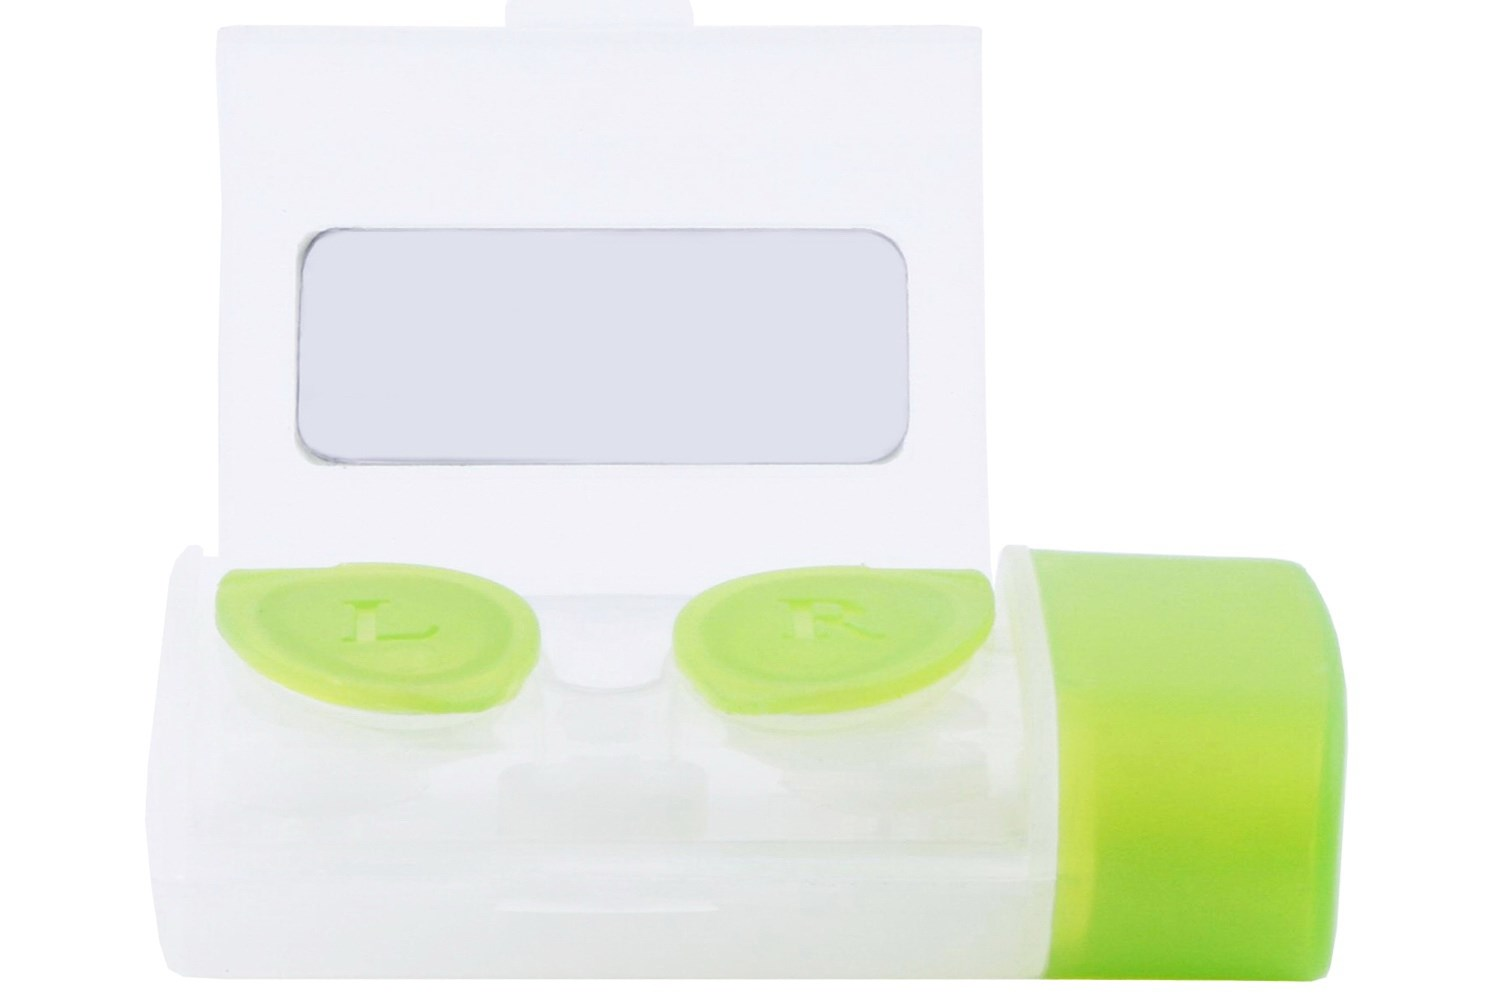 Contact Solution Small Contact Lens Travel Case 115oz